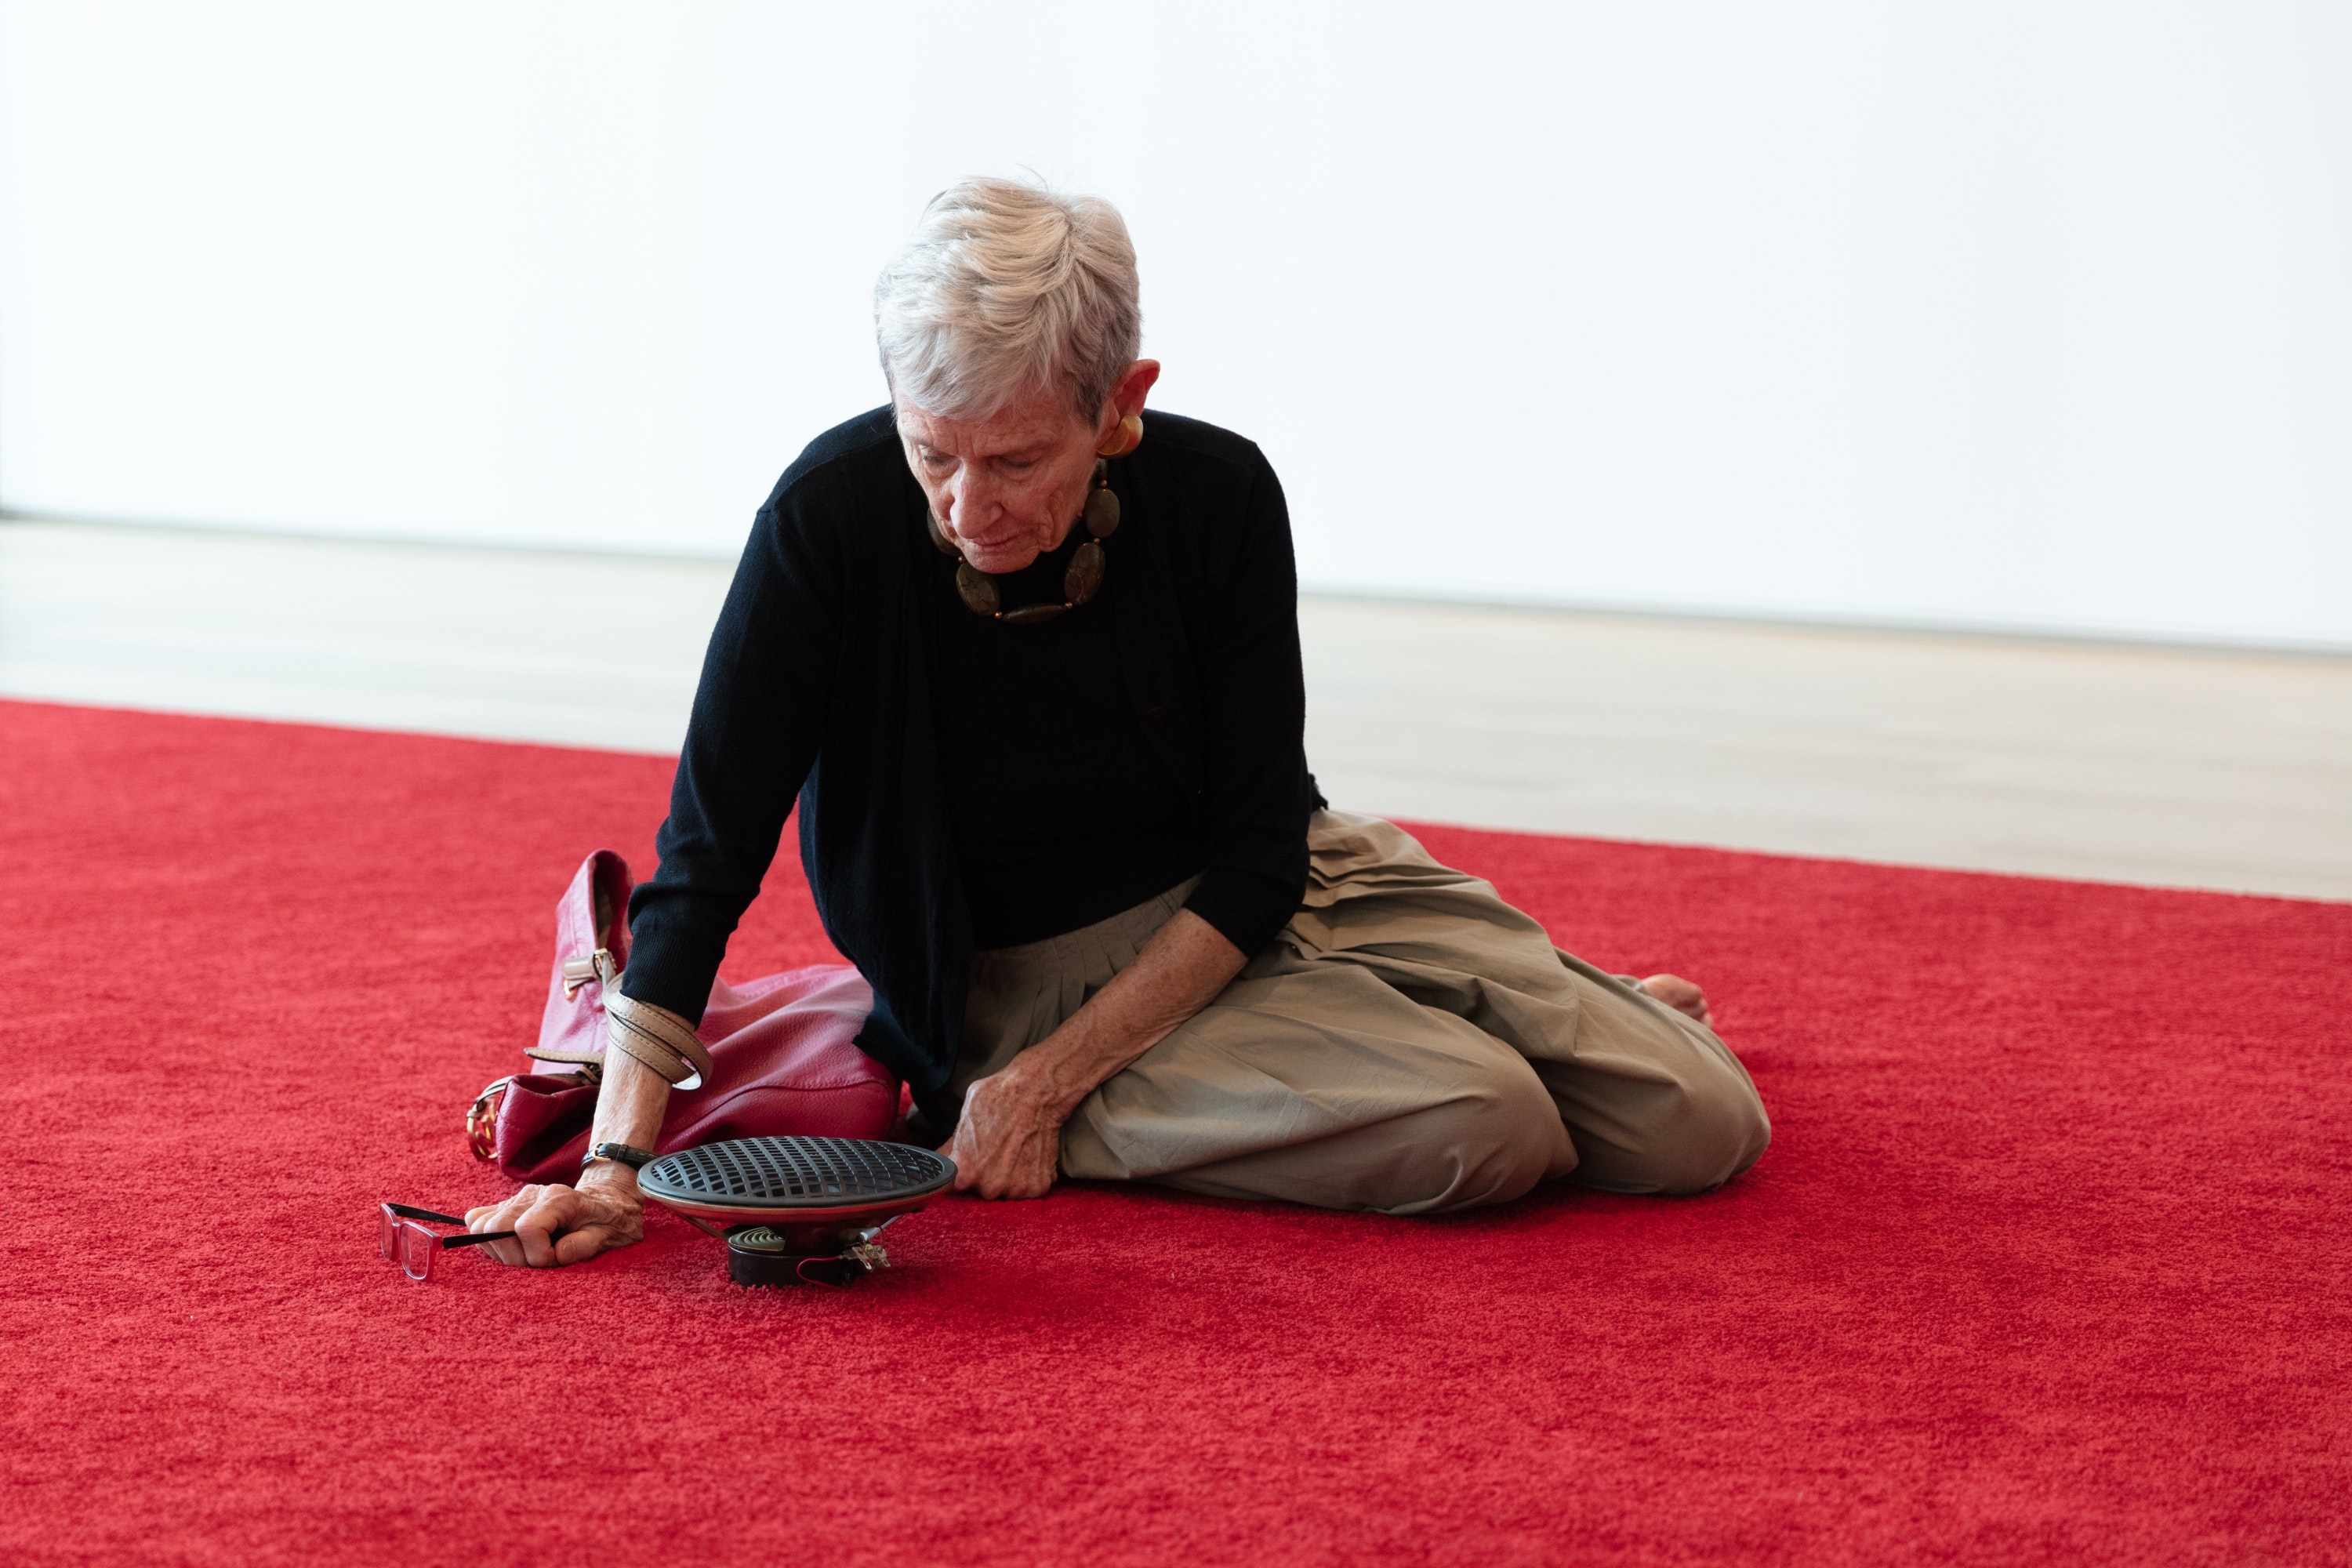 A photo of a person sitting on a red carpet listening to prayers emitting from a small black speaker.